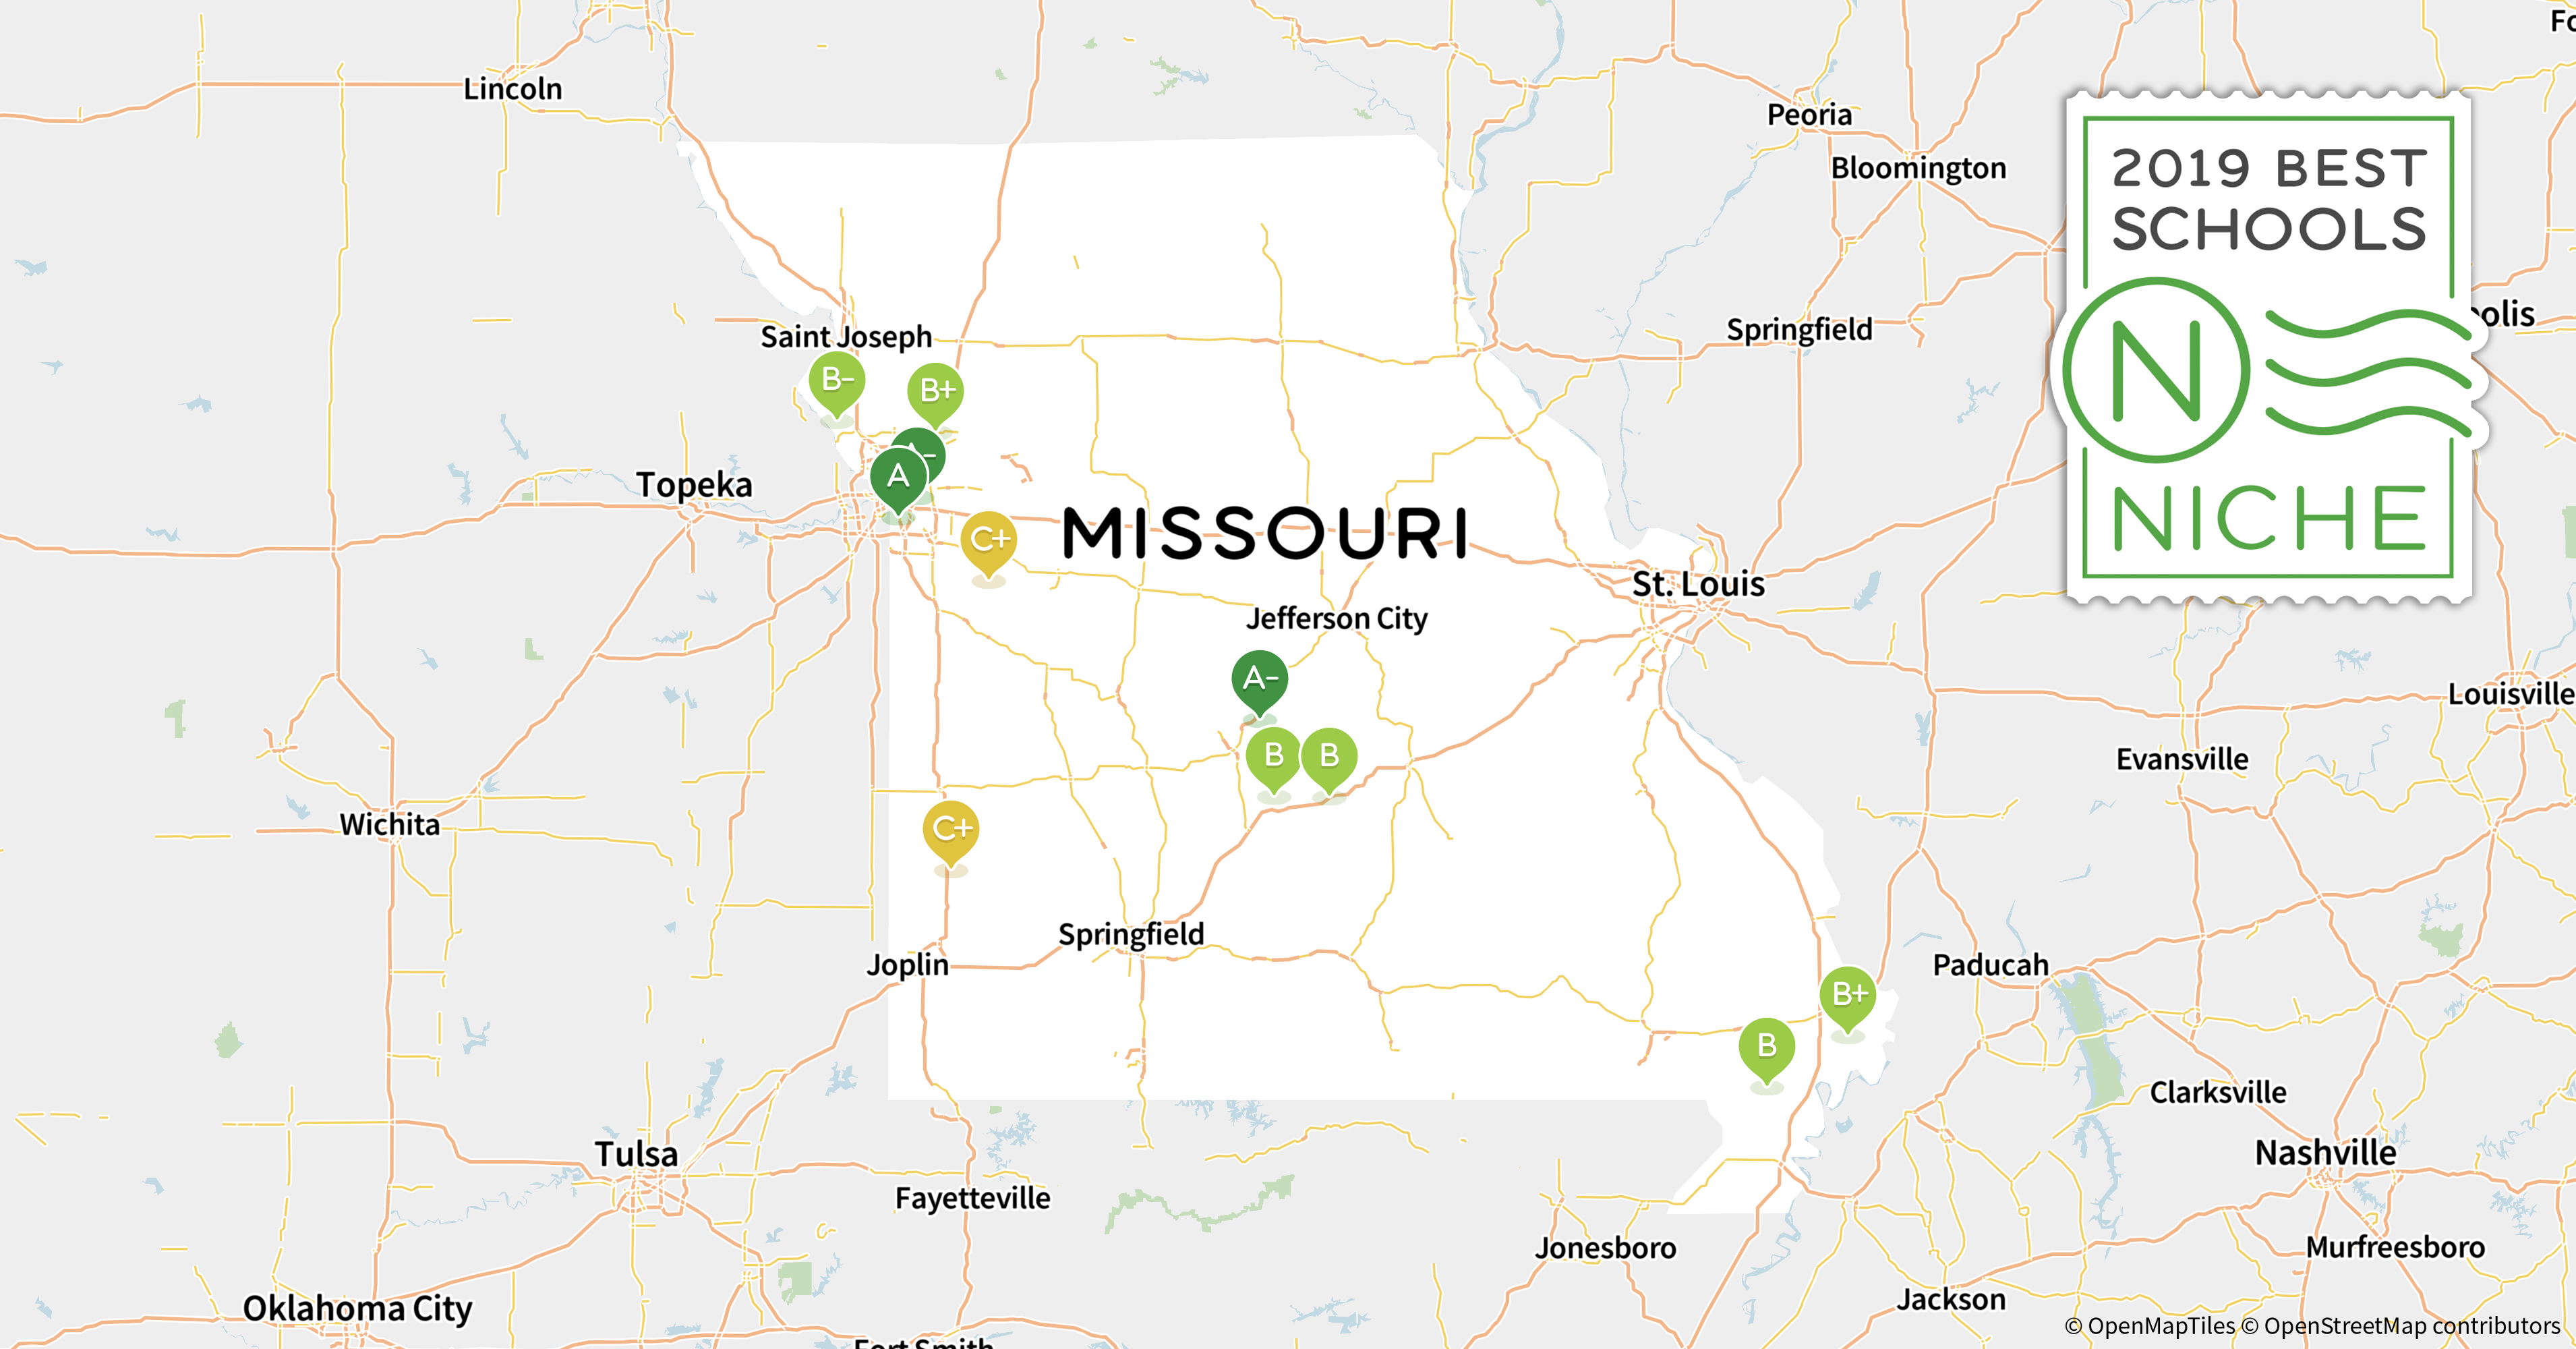 2019 Best School Districts In Missouri Niche